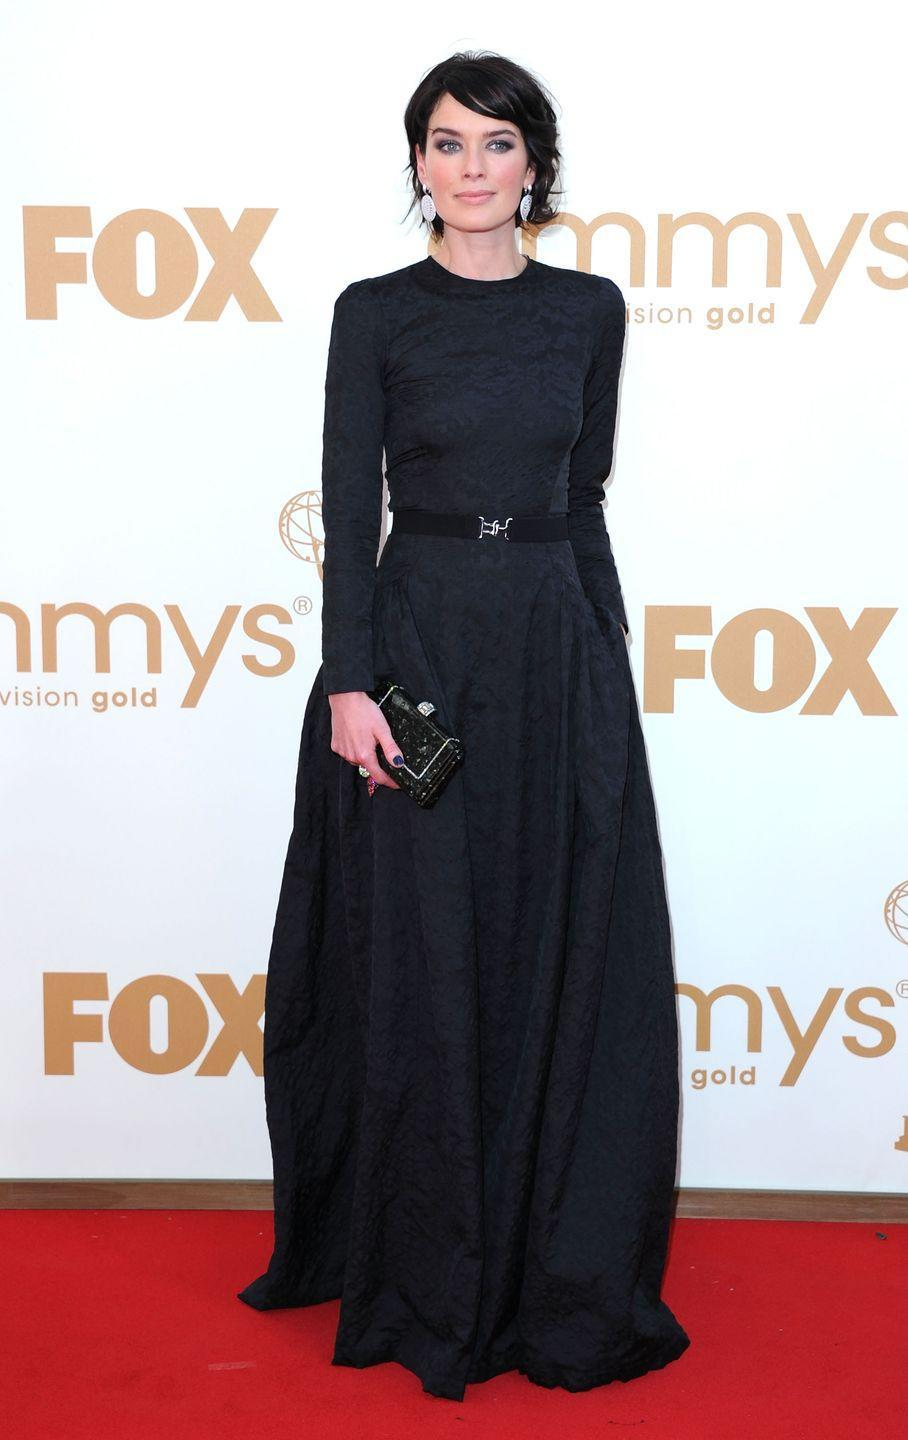 <p>Cersei Lannister would approve of this beautiful black gown Headey wore to the 2011 Emmy Awards. </p>